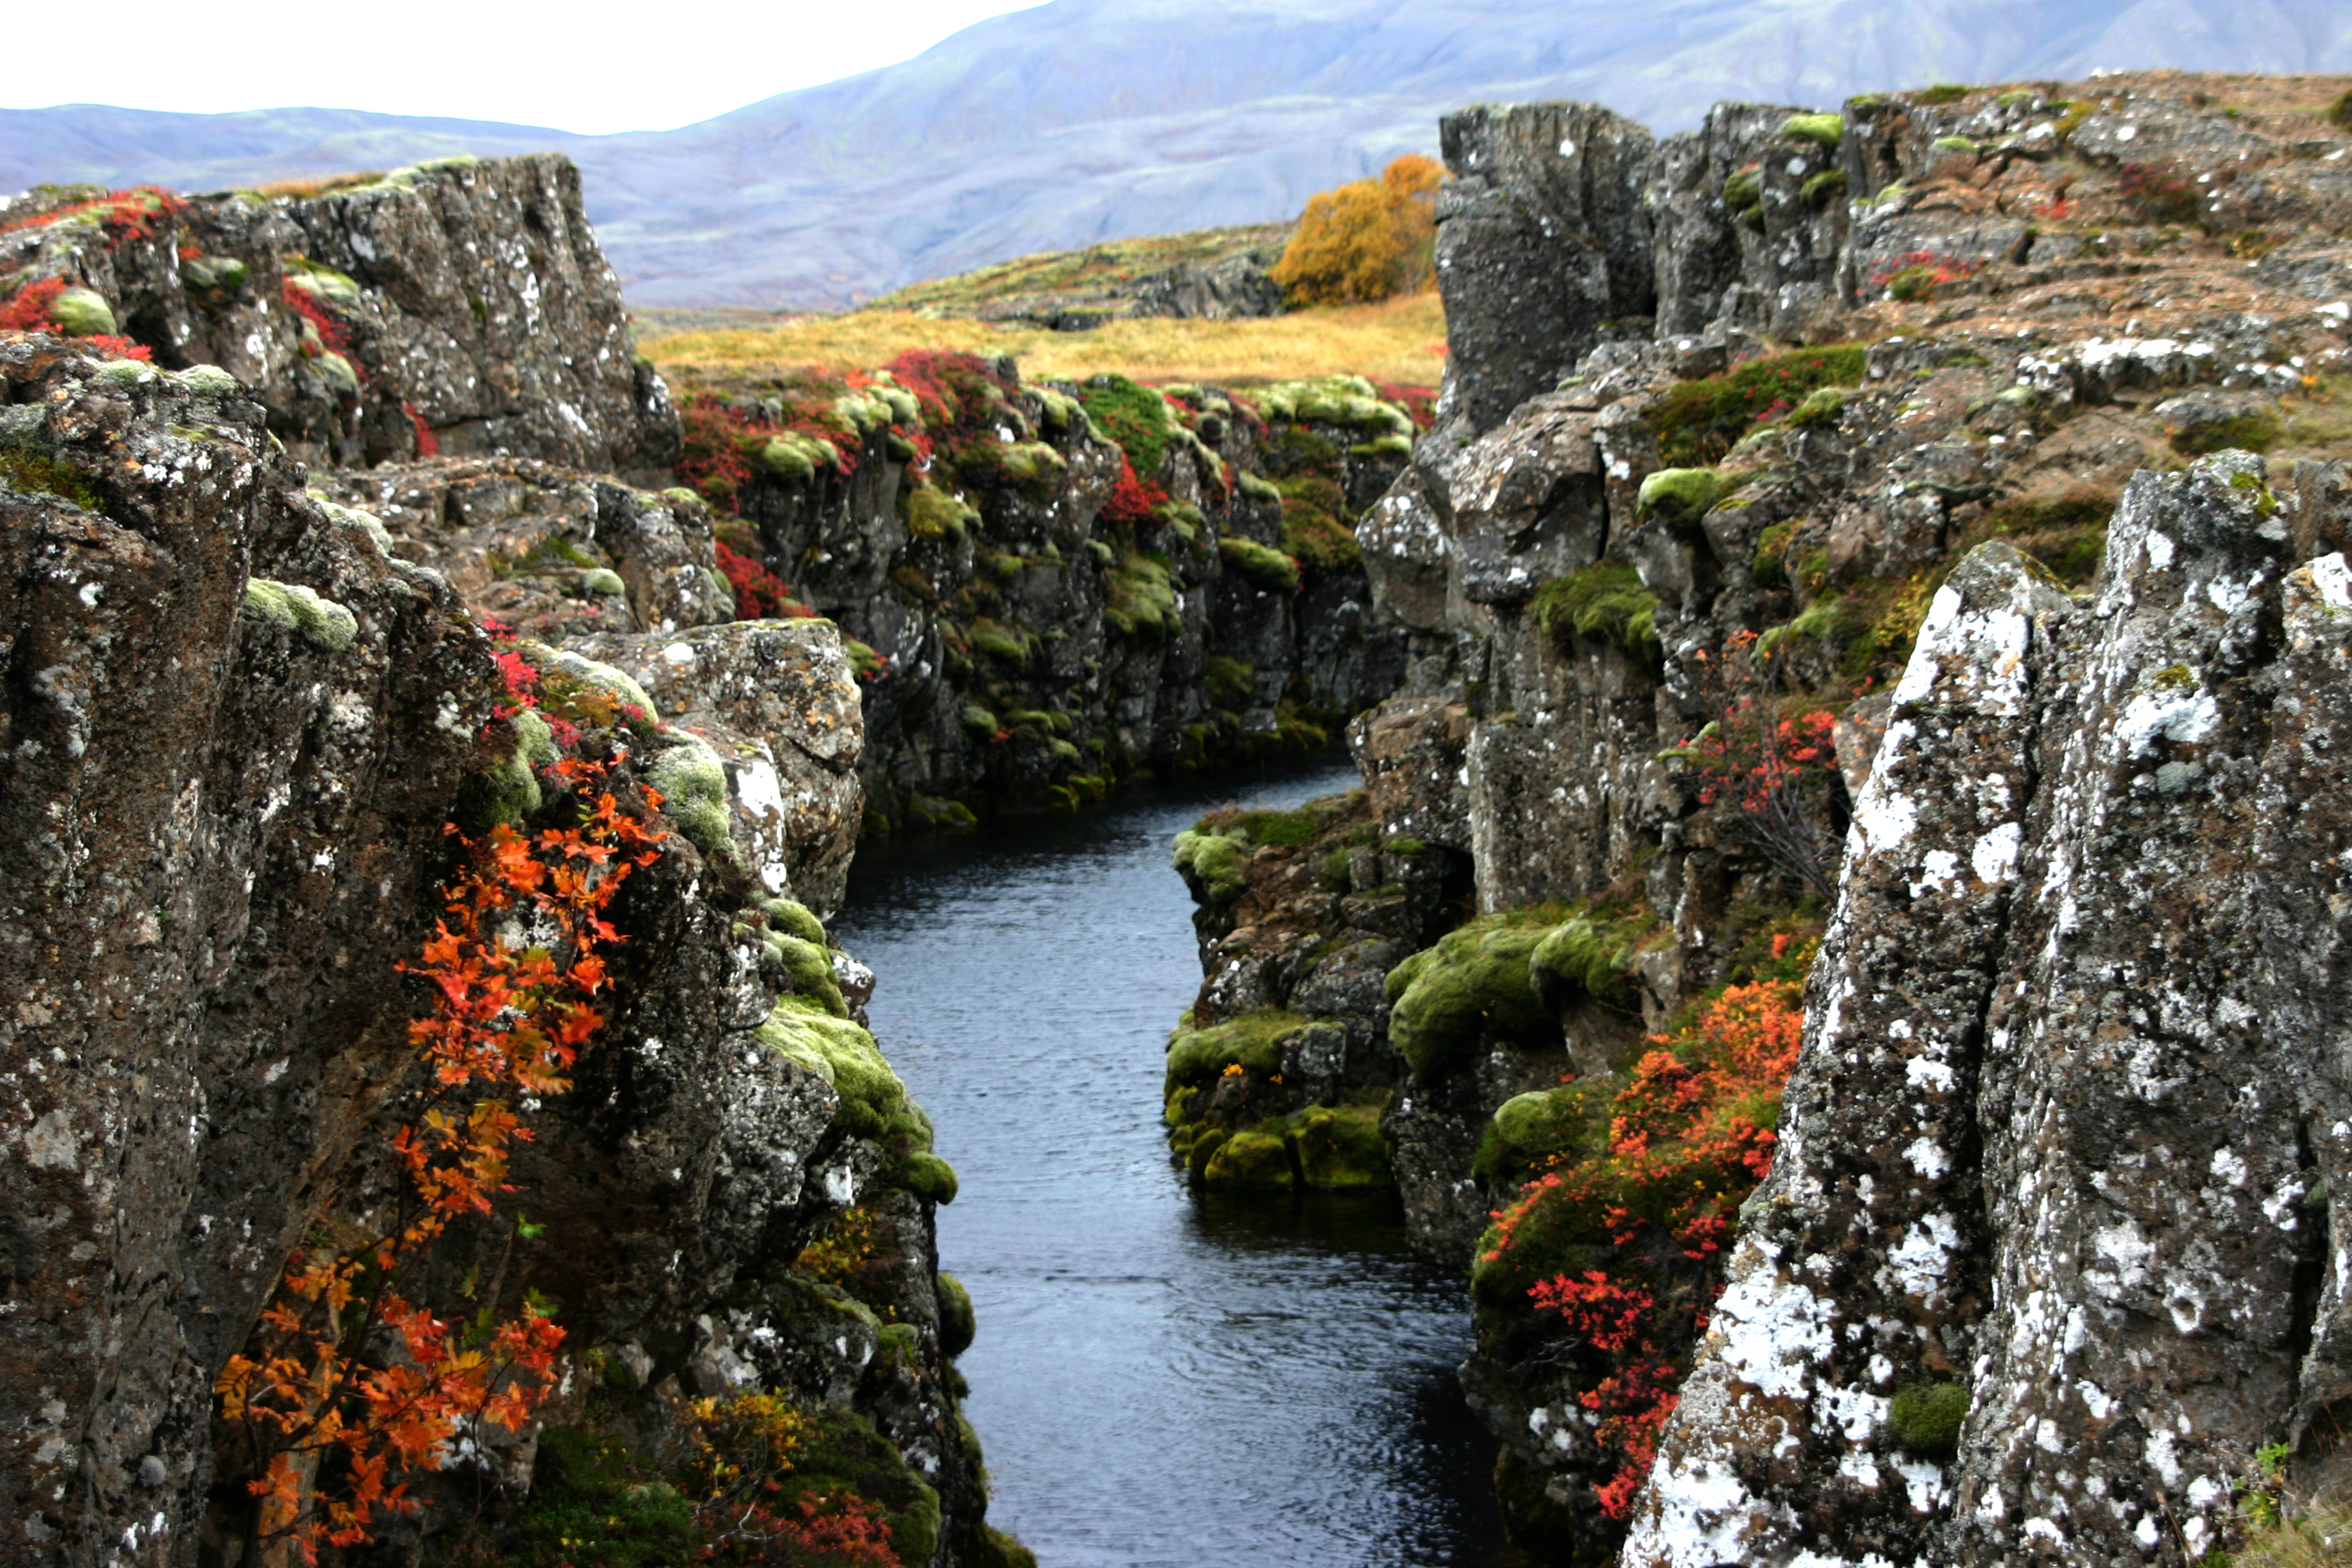 Þingvellir National Park becomes an oasis of colour in the summer months.